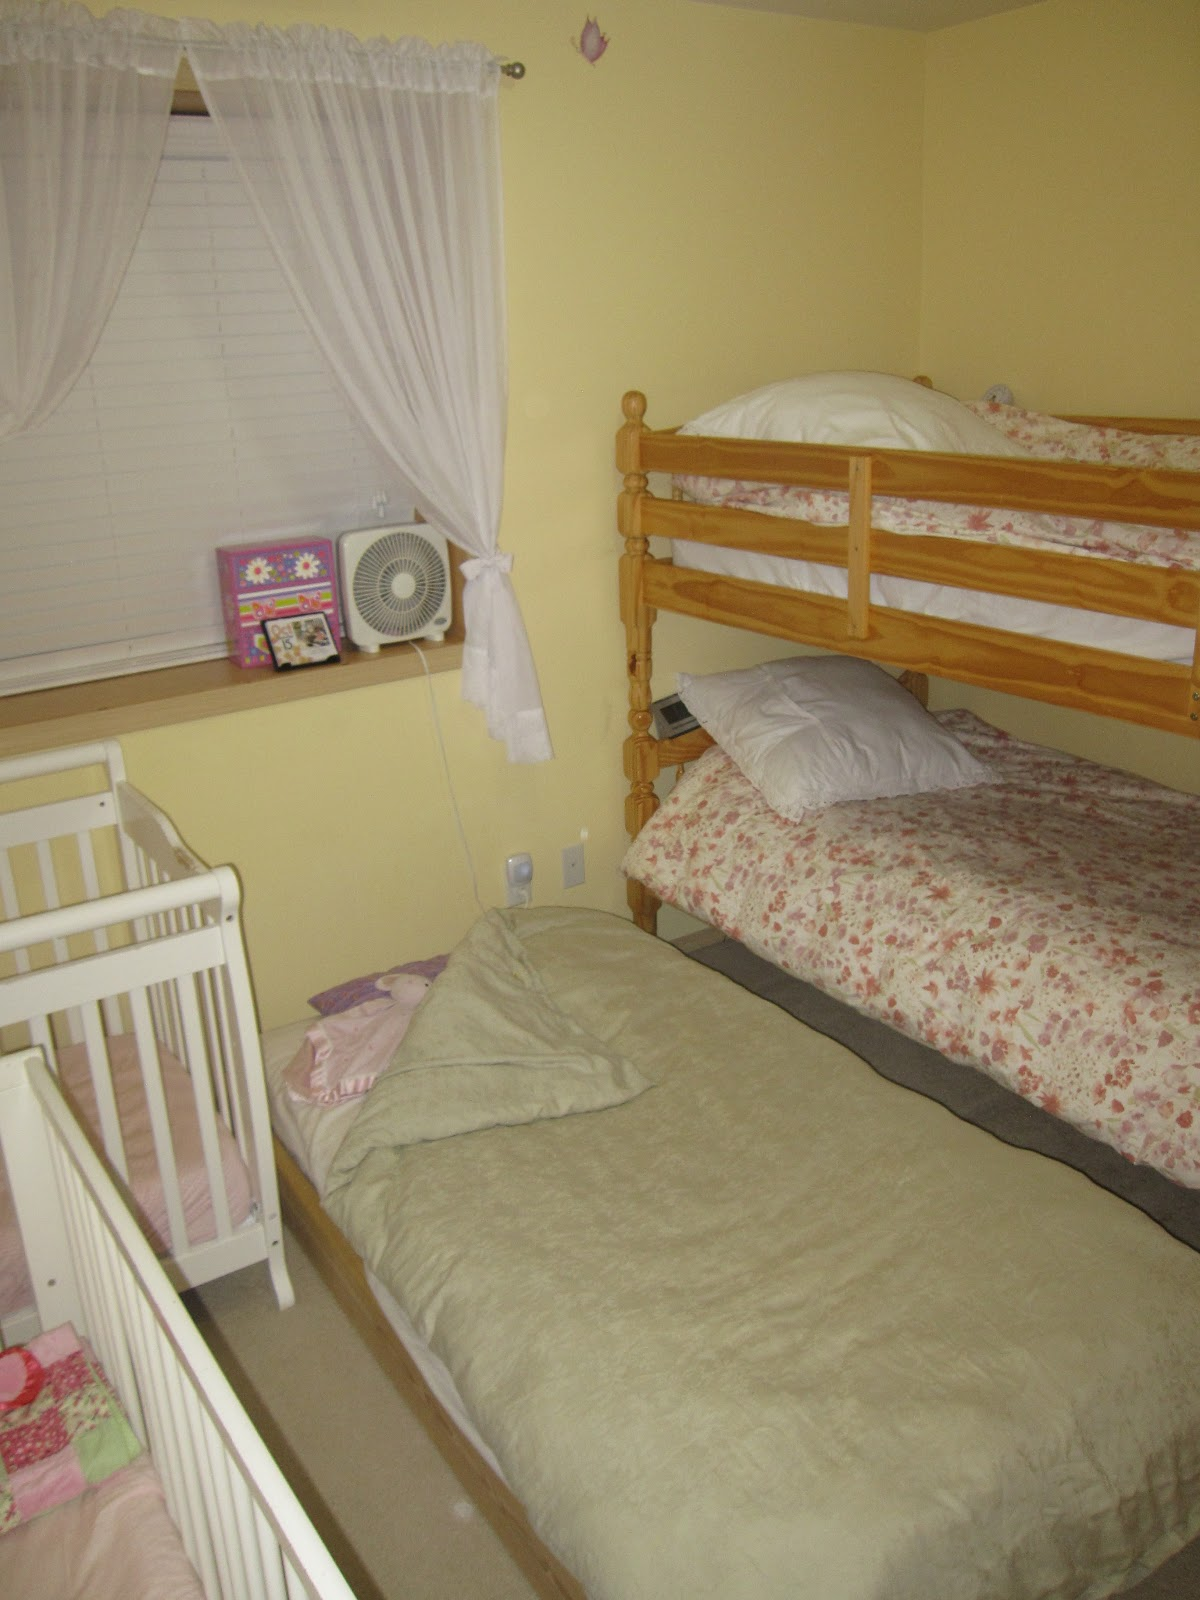 Siblings sharing bedrooms you have how many per room for Bedroom ideas for siblings sharing